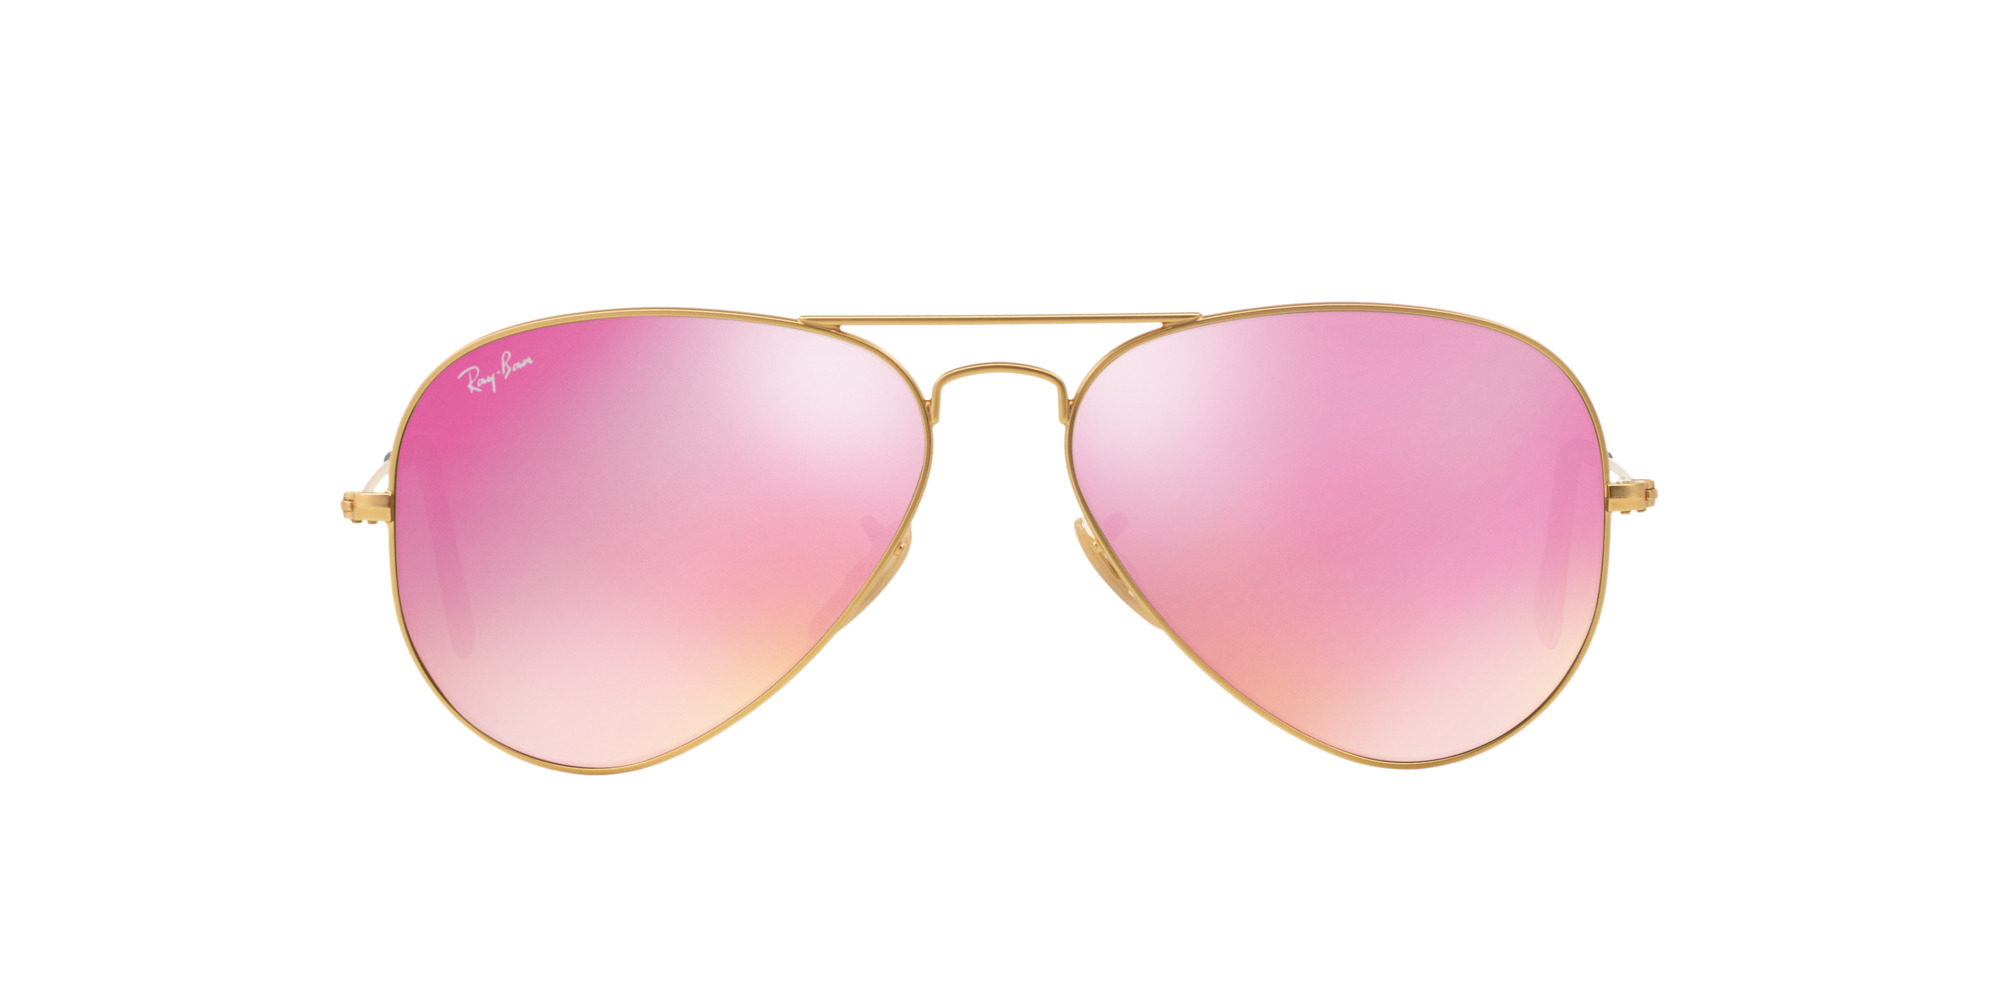 RAY-BAN AVIATOR RB 3025 112/4T-360